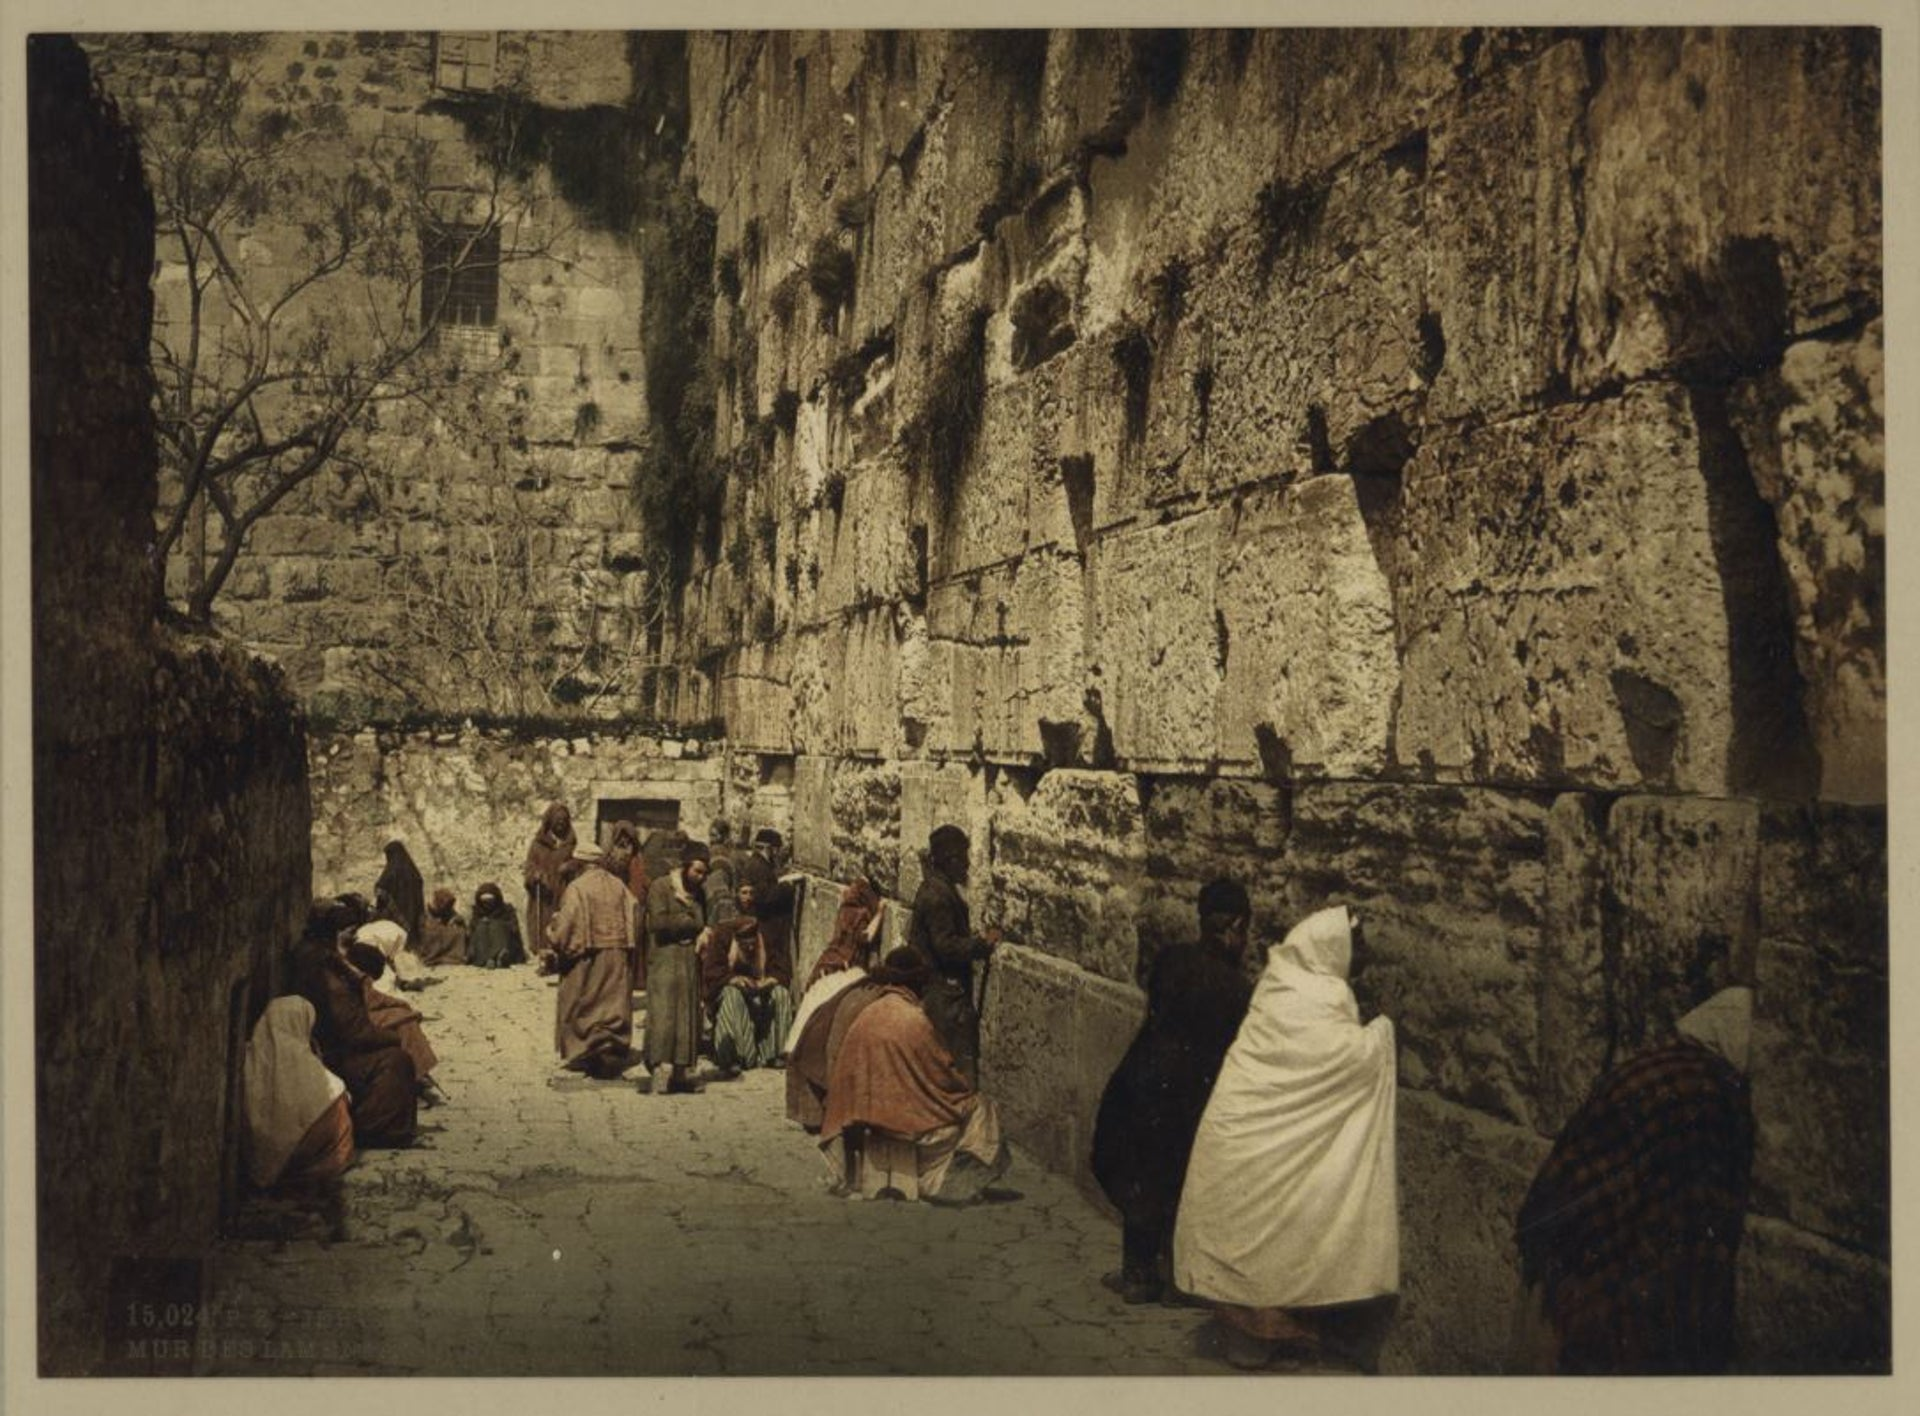 The Western Wall at the end of the 19th century. Men and women are seen leaning on the wall.